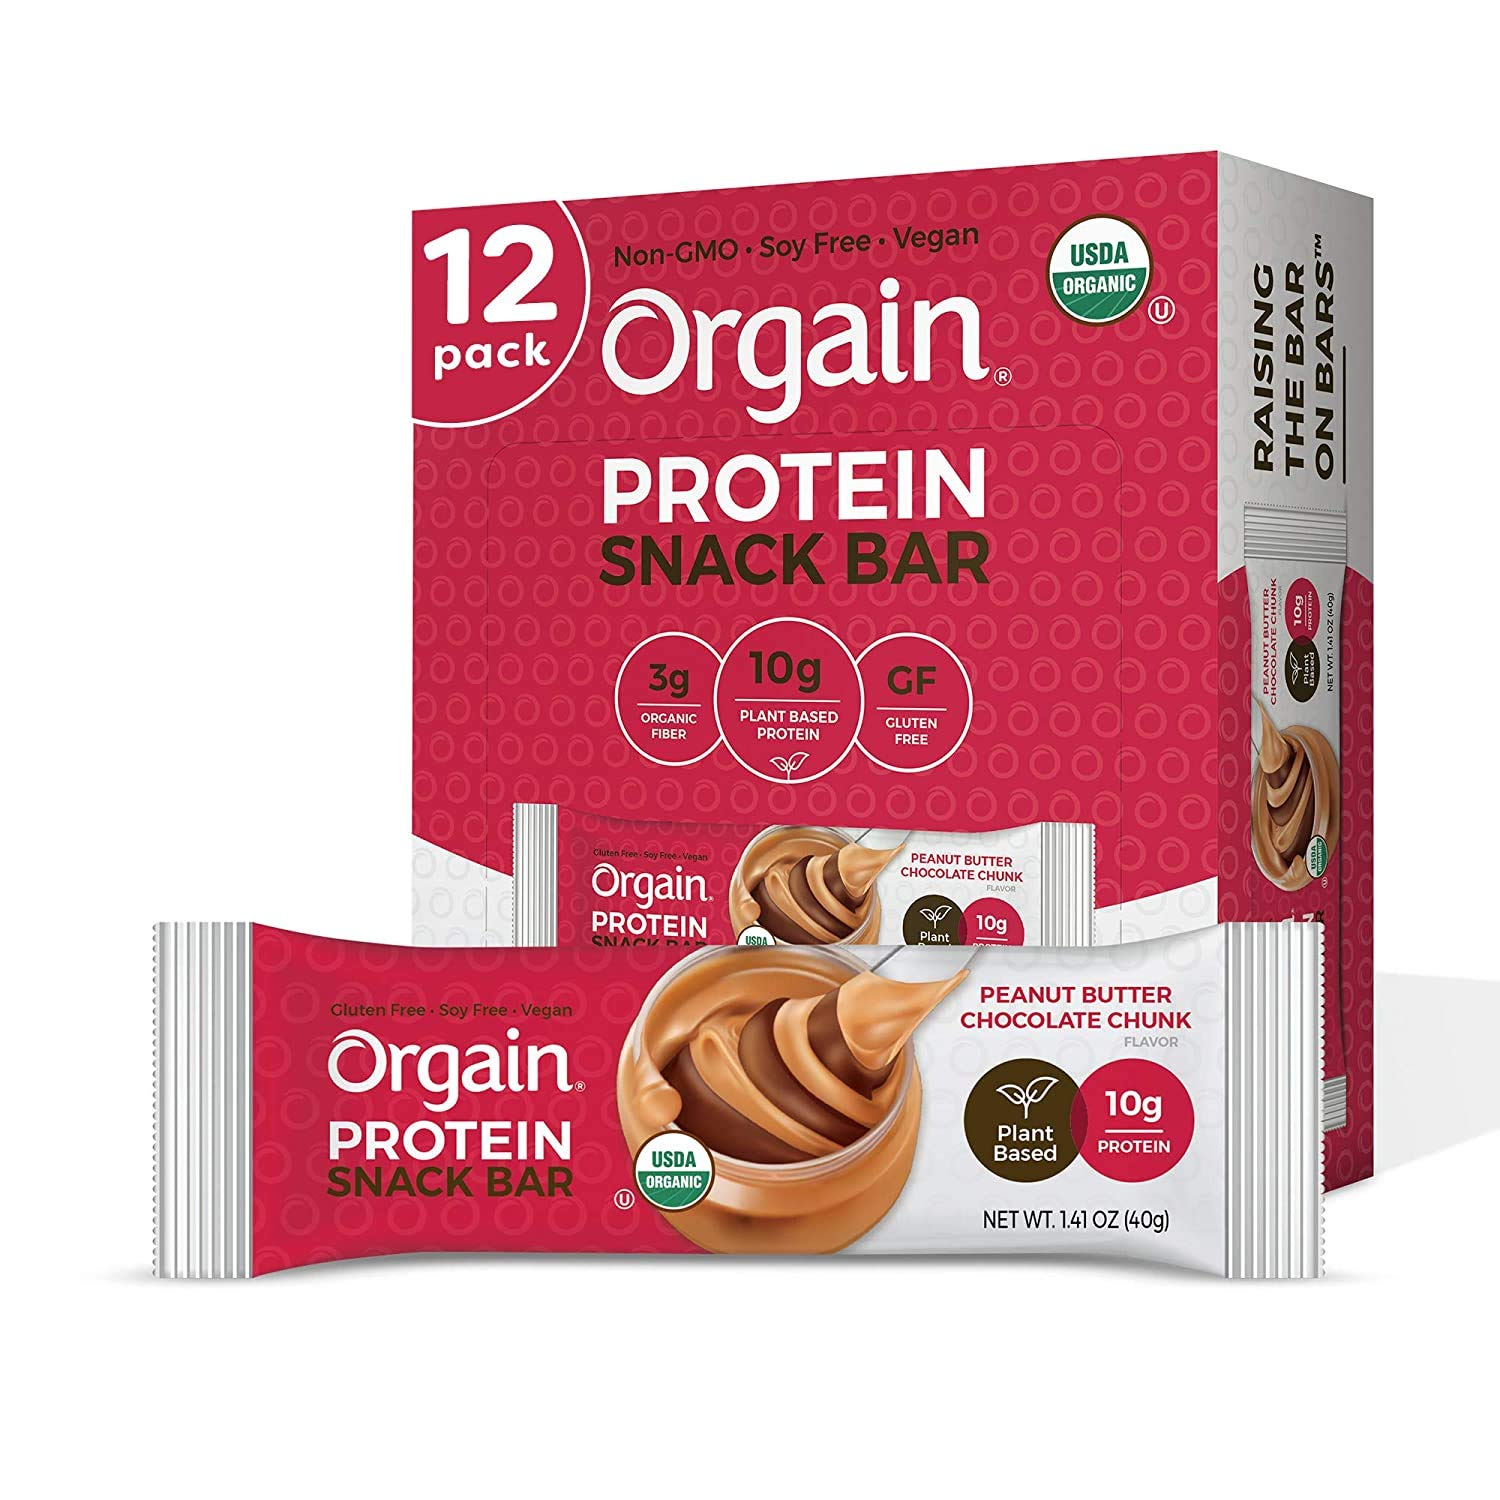 Orgain Organic Plant Based Protein Bar, Peanut Butter Chocolate Chunk - Vegan, Gluten Free, Non Dairy, Soy Free, Lactose Free, Kosher, Non-GMO, 1.41 Ounce, 12 Count (Packaging May Vary)